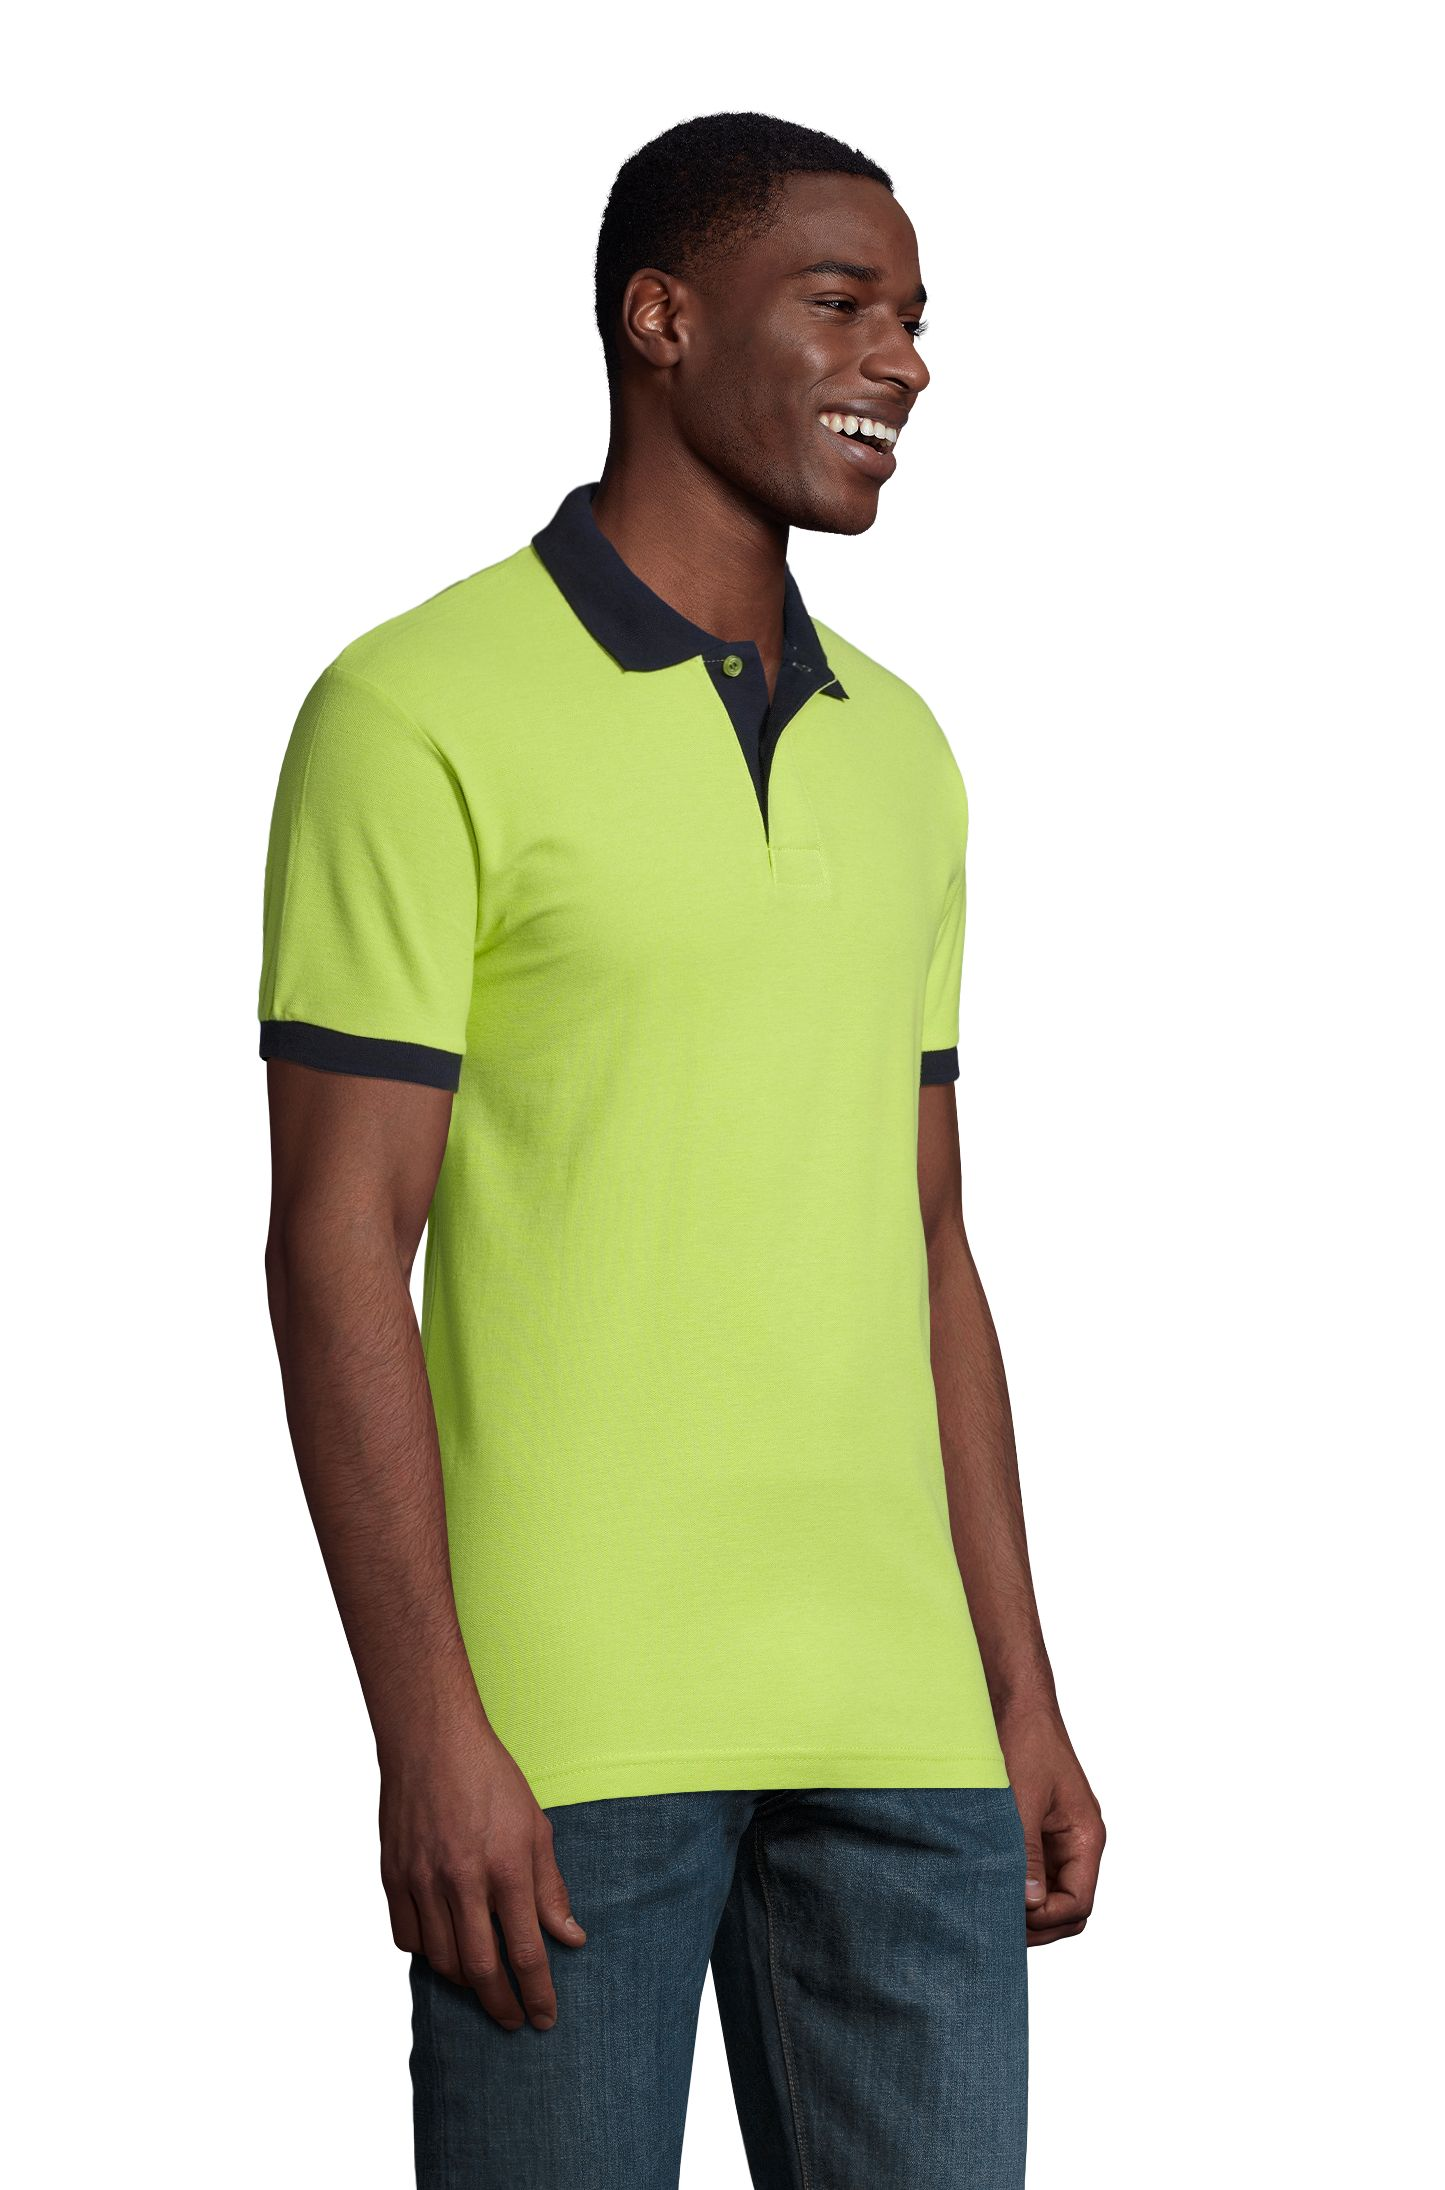 924 - Apple green / French navy